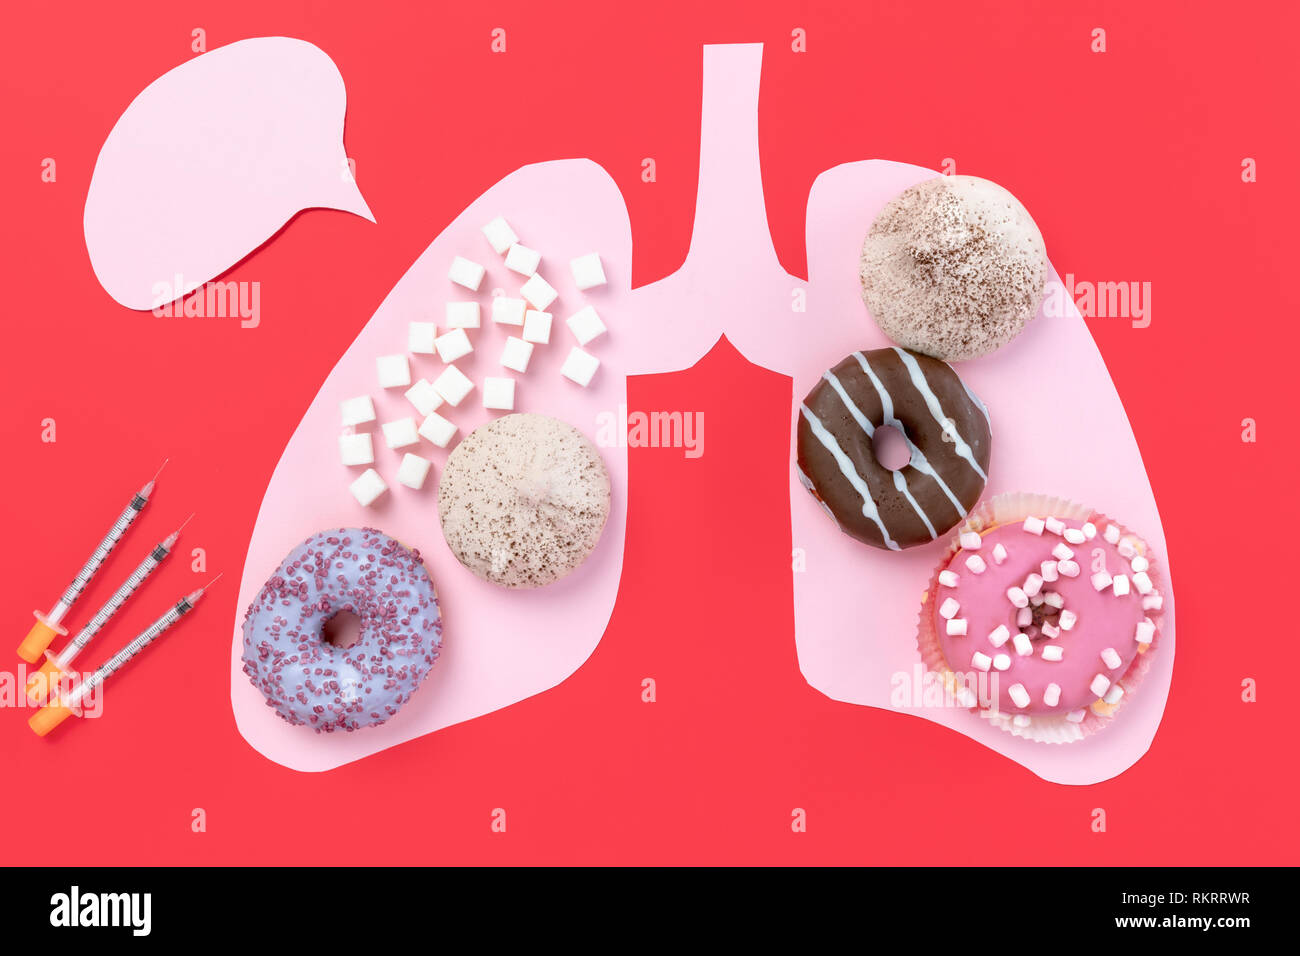 Diabetes concept. Sugar in lungs on pink background. Cholesterol diet and healthy food nutrition, world day. Conceptual composition with copyspace - Stock Image